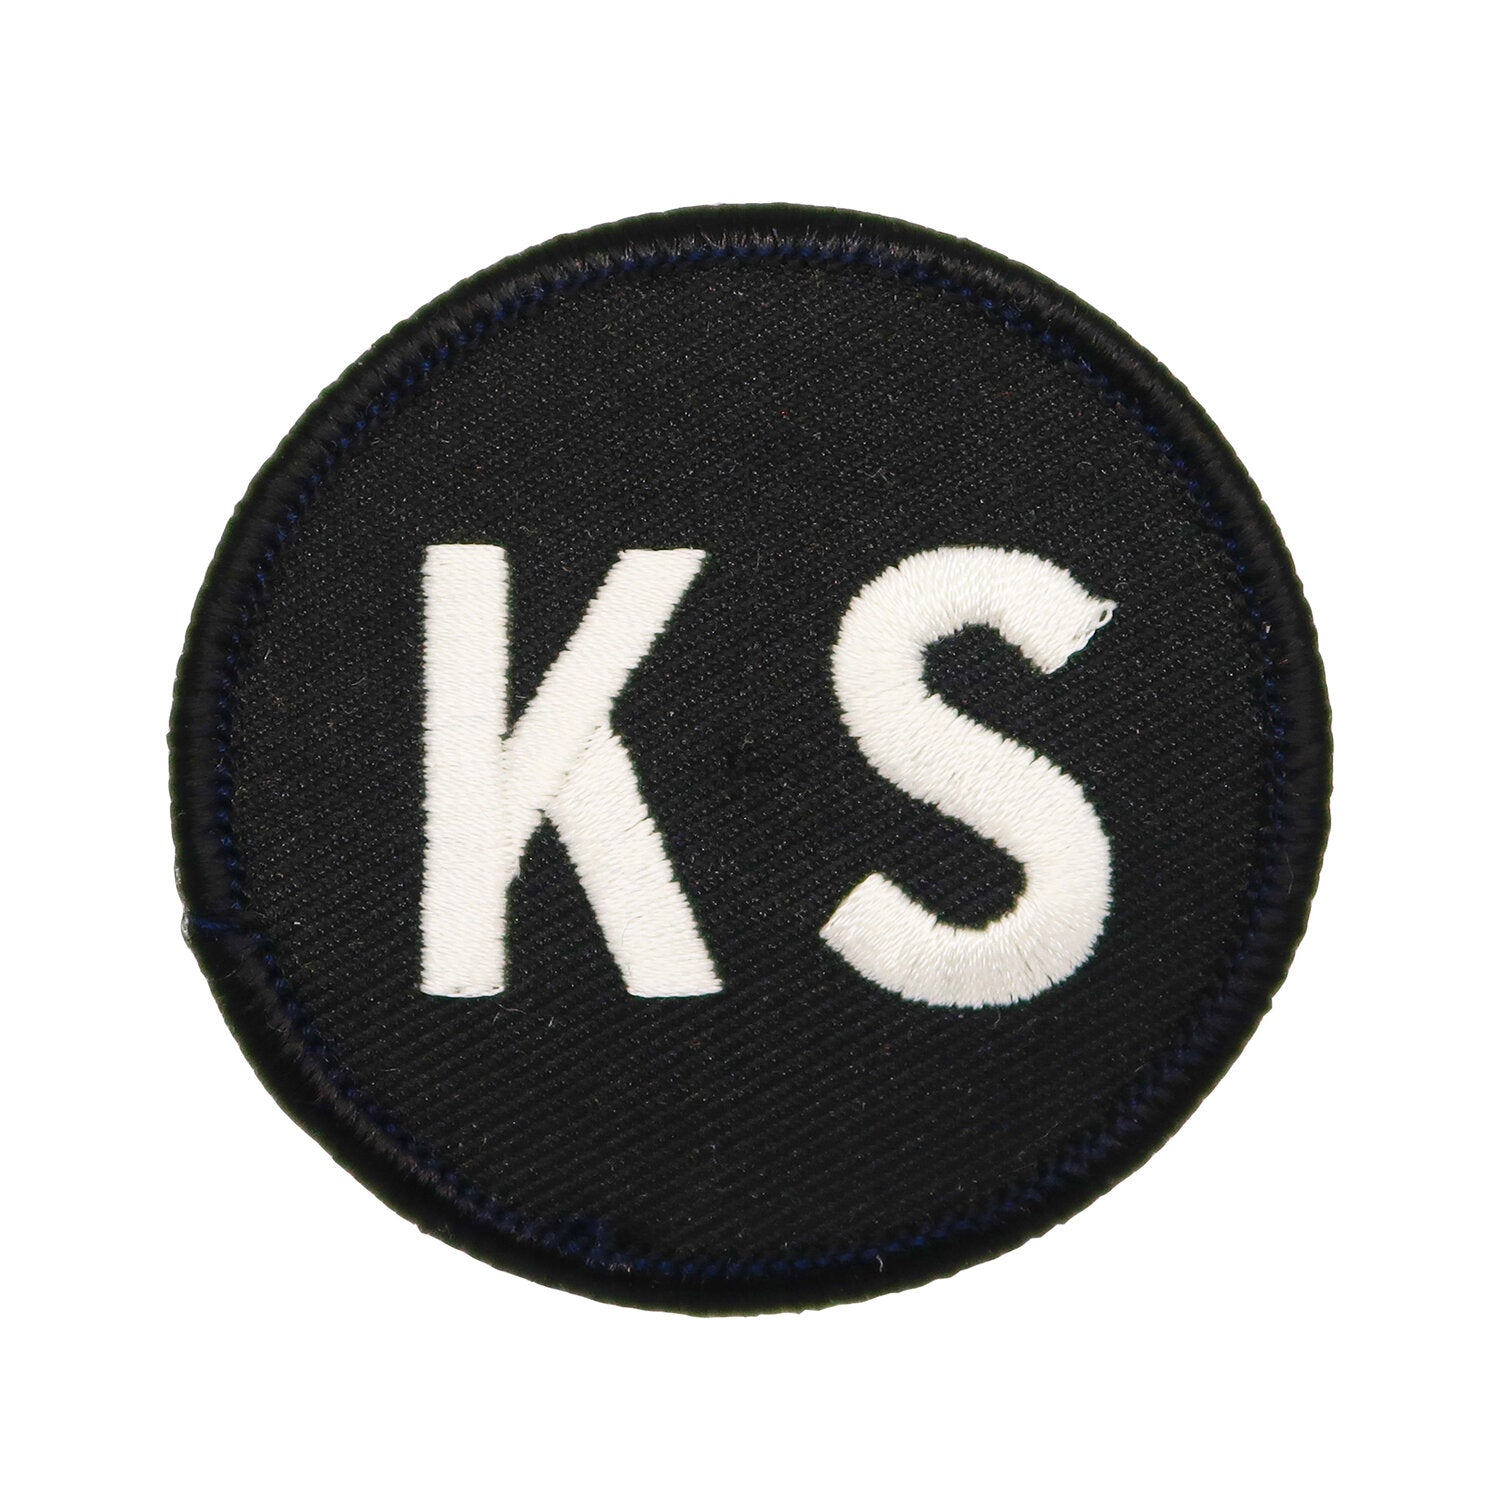 KS Small Patch